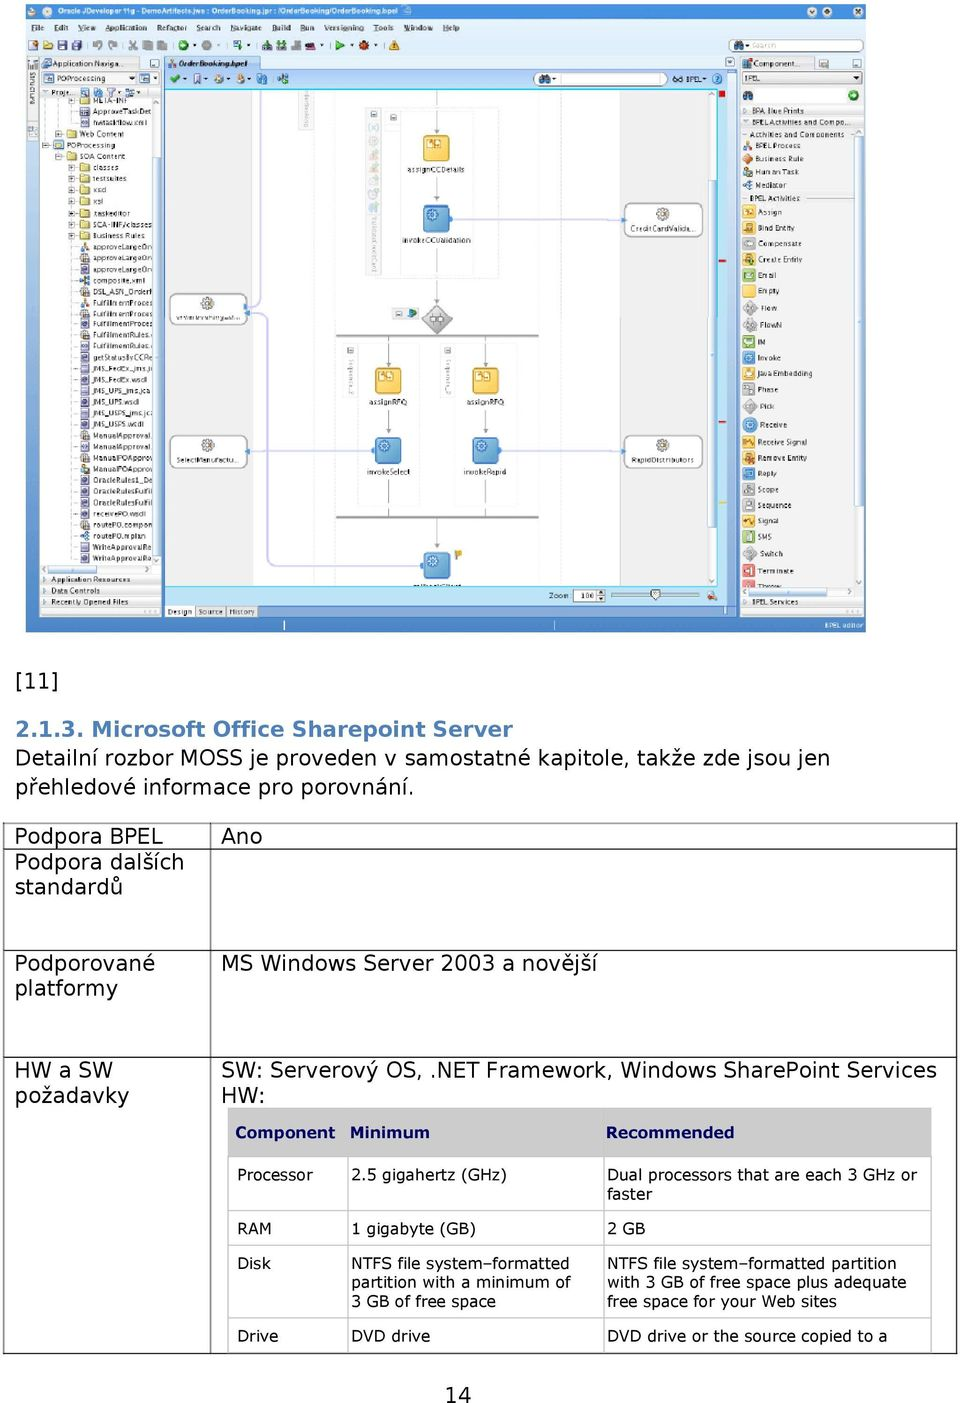 NET Framework, Windows SharePoint Services HW: Component Minimum Recommended Processor 2.